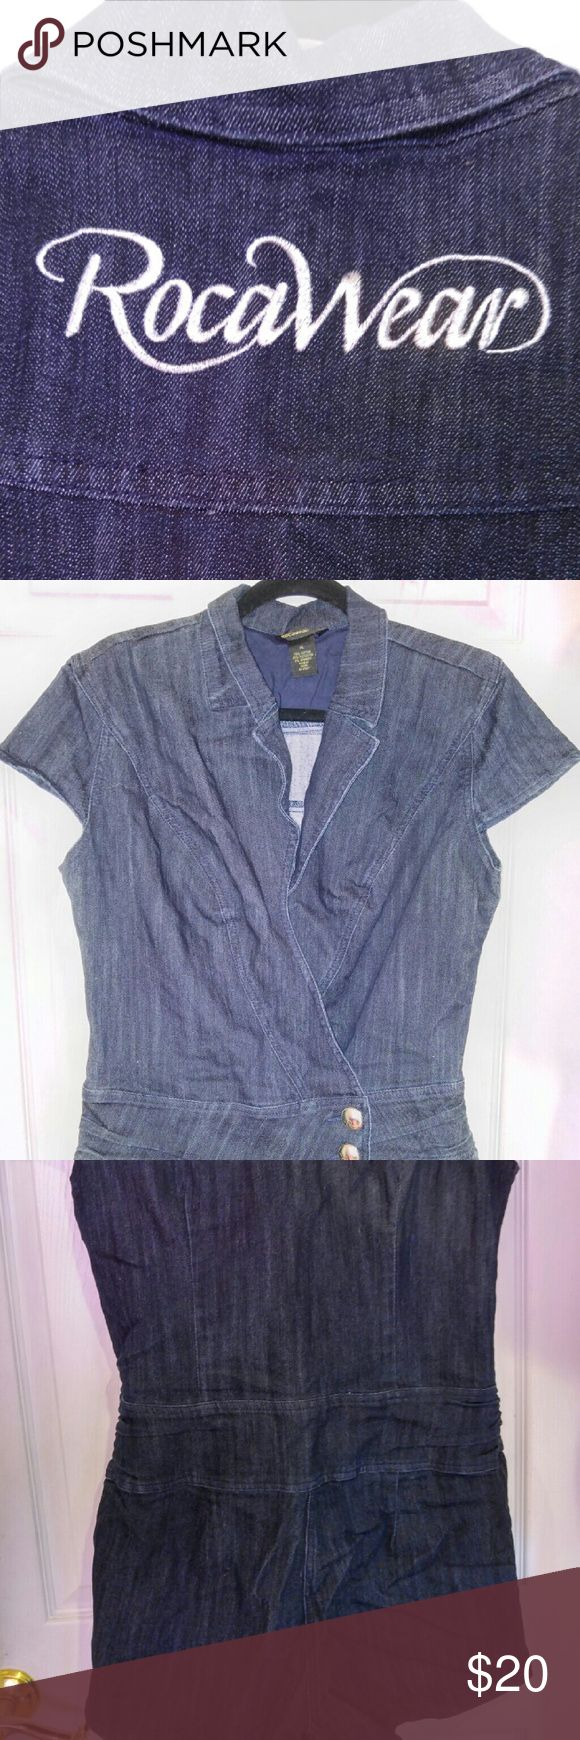 Roca wear jean jumpsuit Gently used Rocawear jeans jumpsuit size extra large. Message me for more details discount or bundles. Thank you for looking Rocawear Dresses